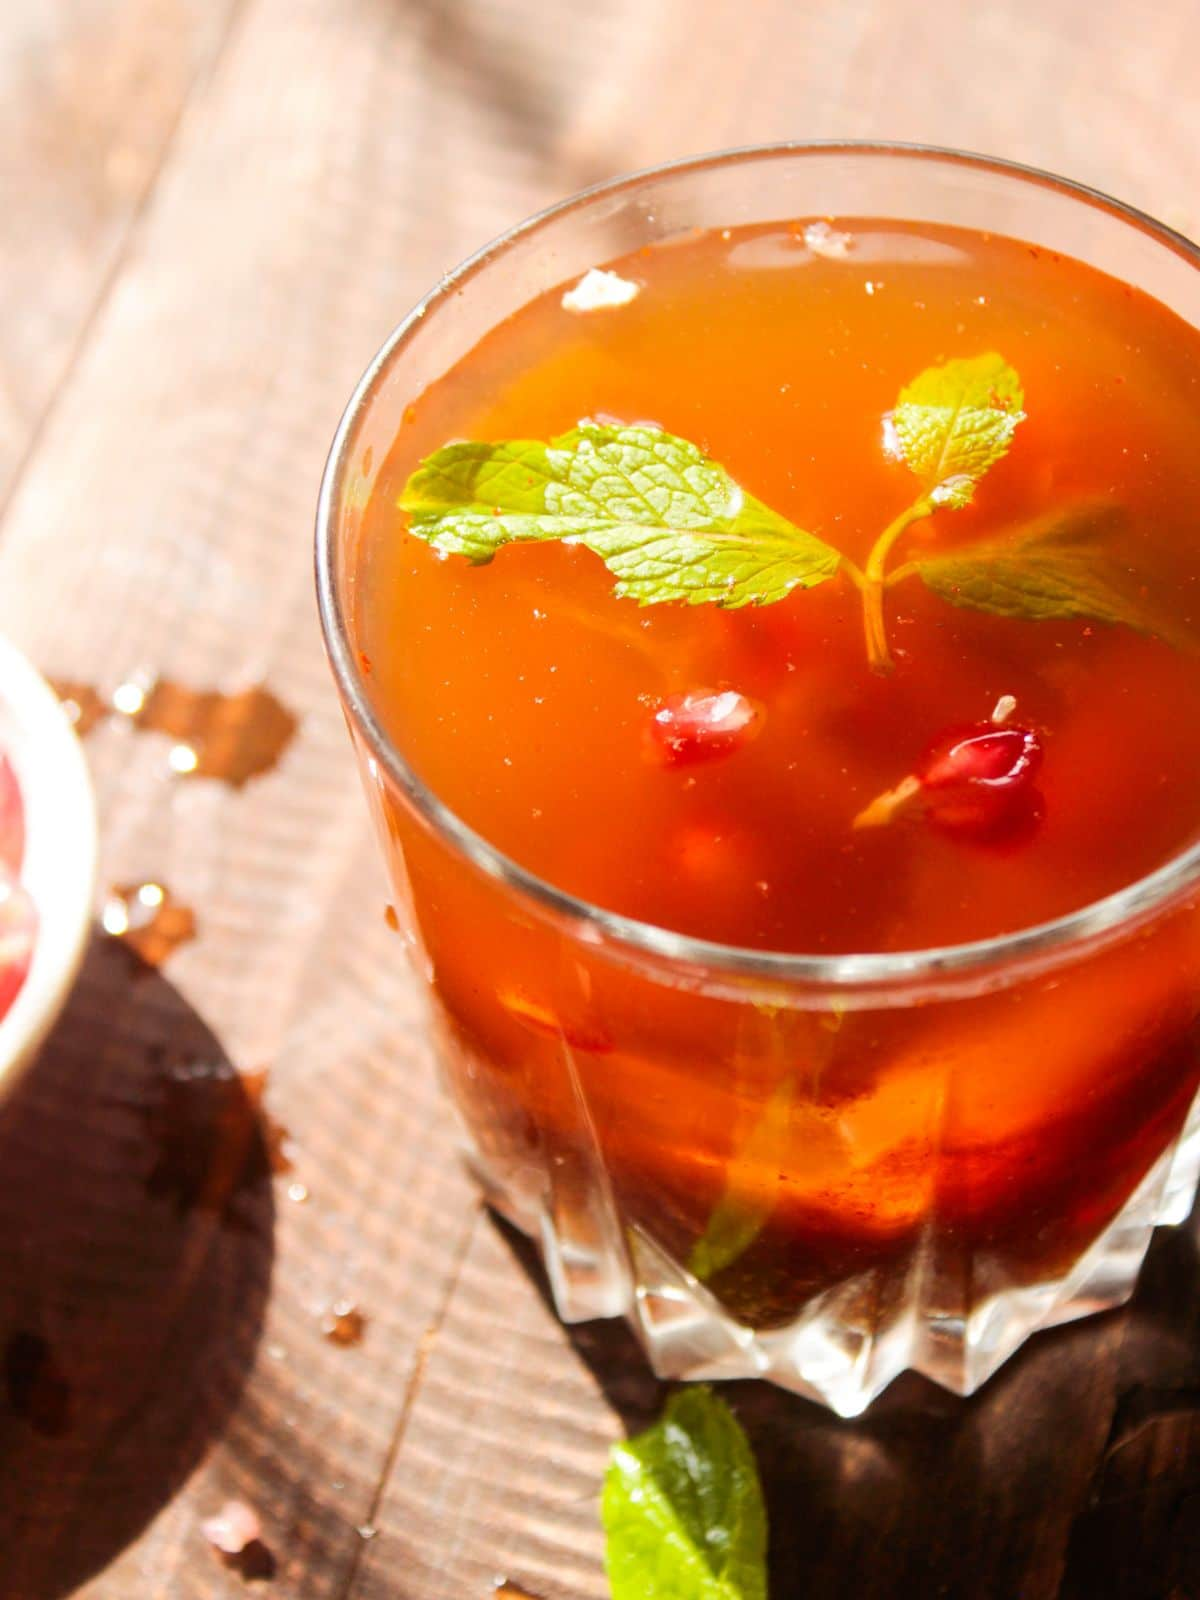 Short glass with red tamarind cooler topped with mint sprig and pomegranate seeds